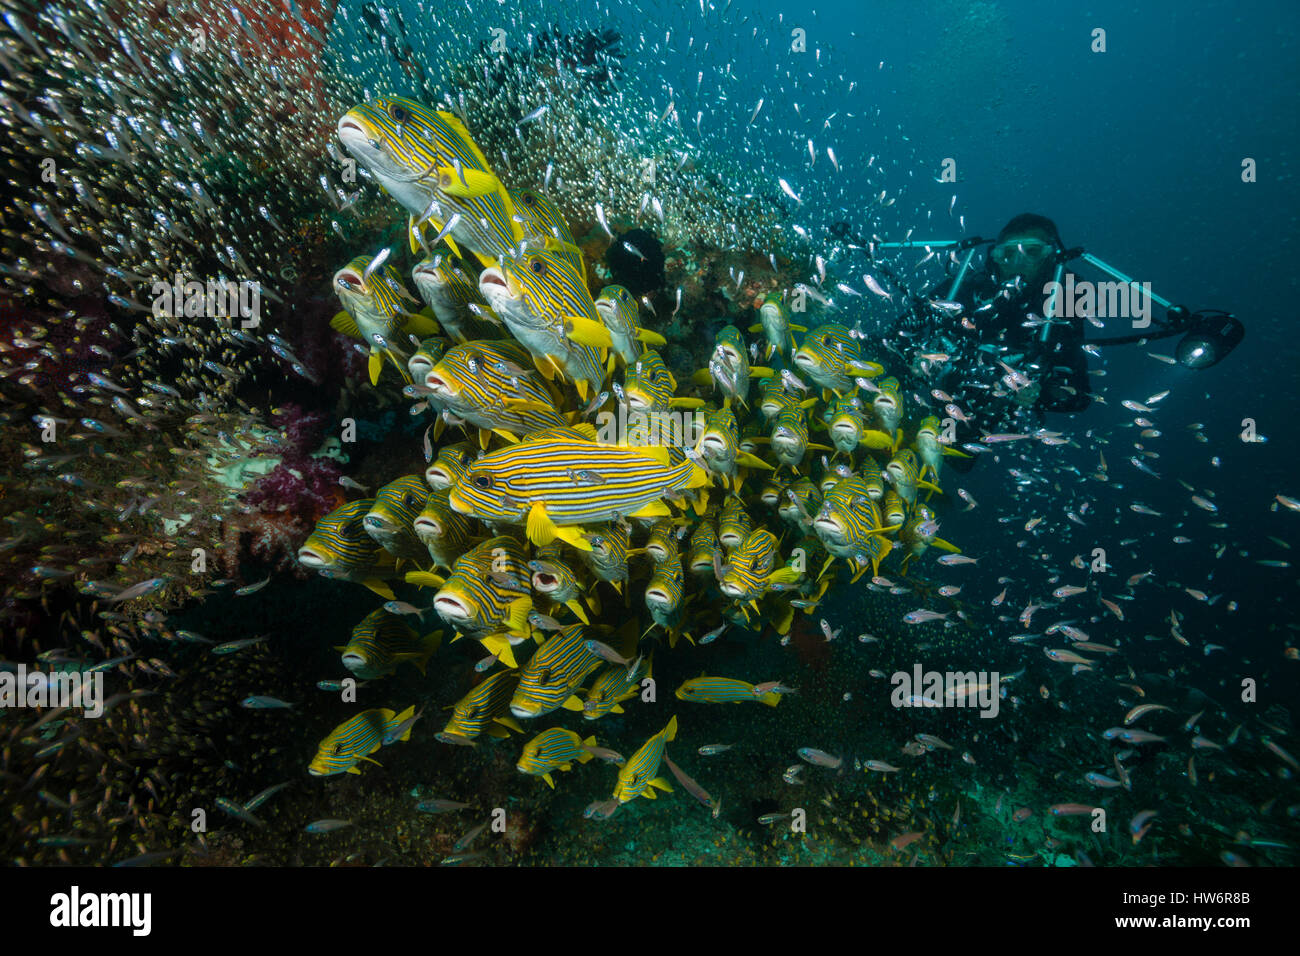 Shoal of Yellow-ribbon Sweetlips, Plectorhinchus polytaenia, Raja Ampat, West Papua, Indonesia - Stock Image